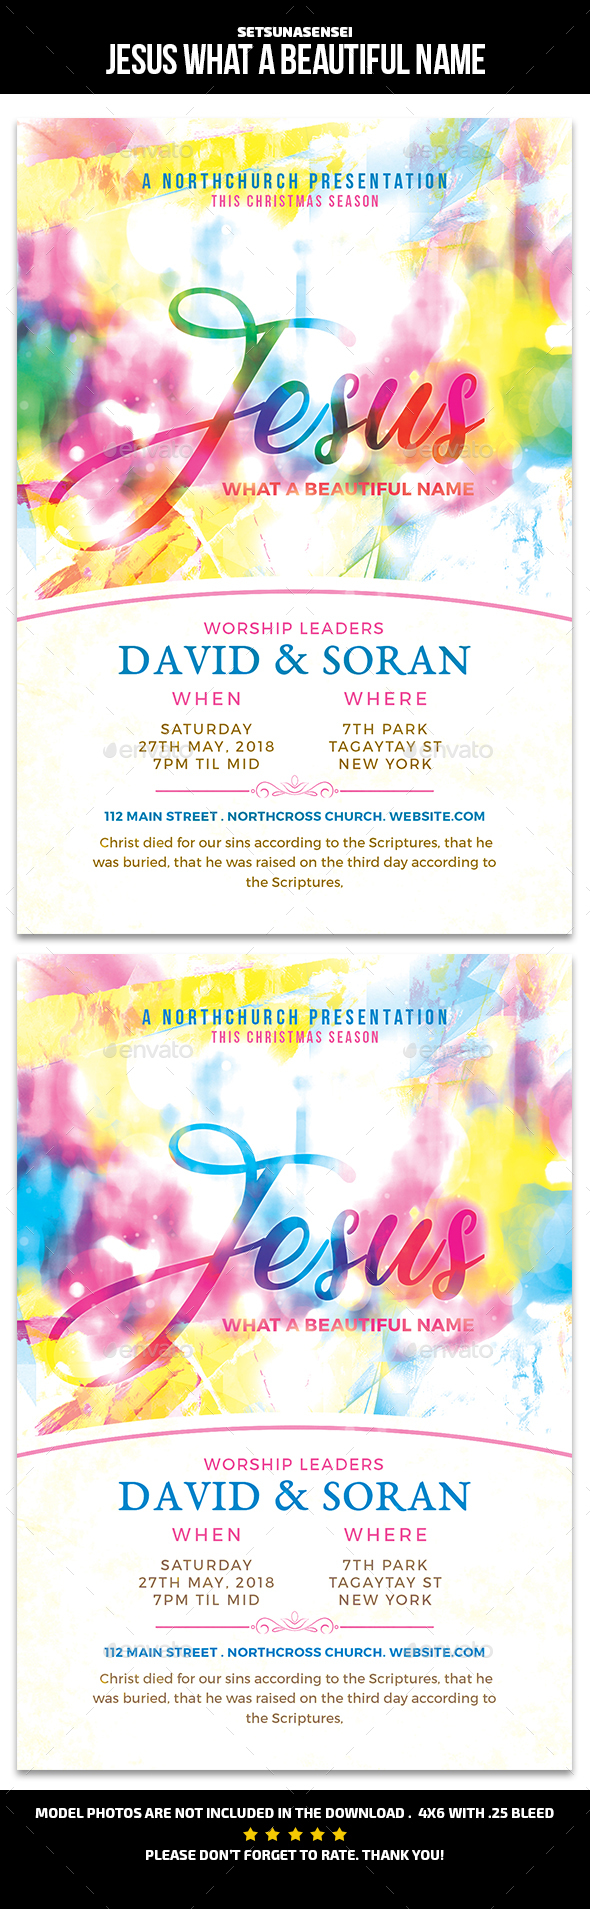 Jesus What a Beautiful Name Church Flyer - Church Flyers